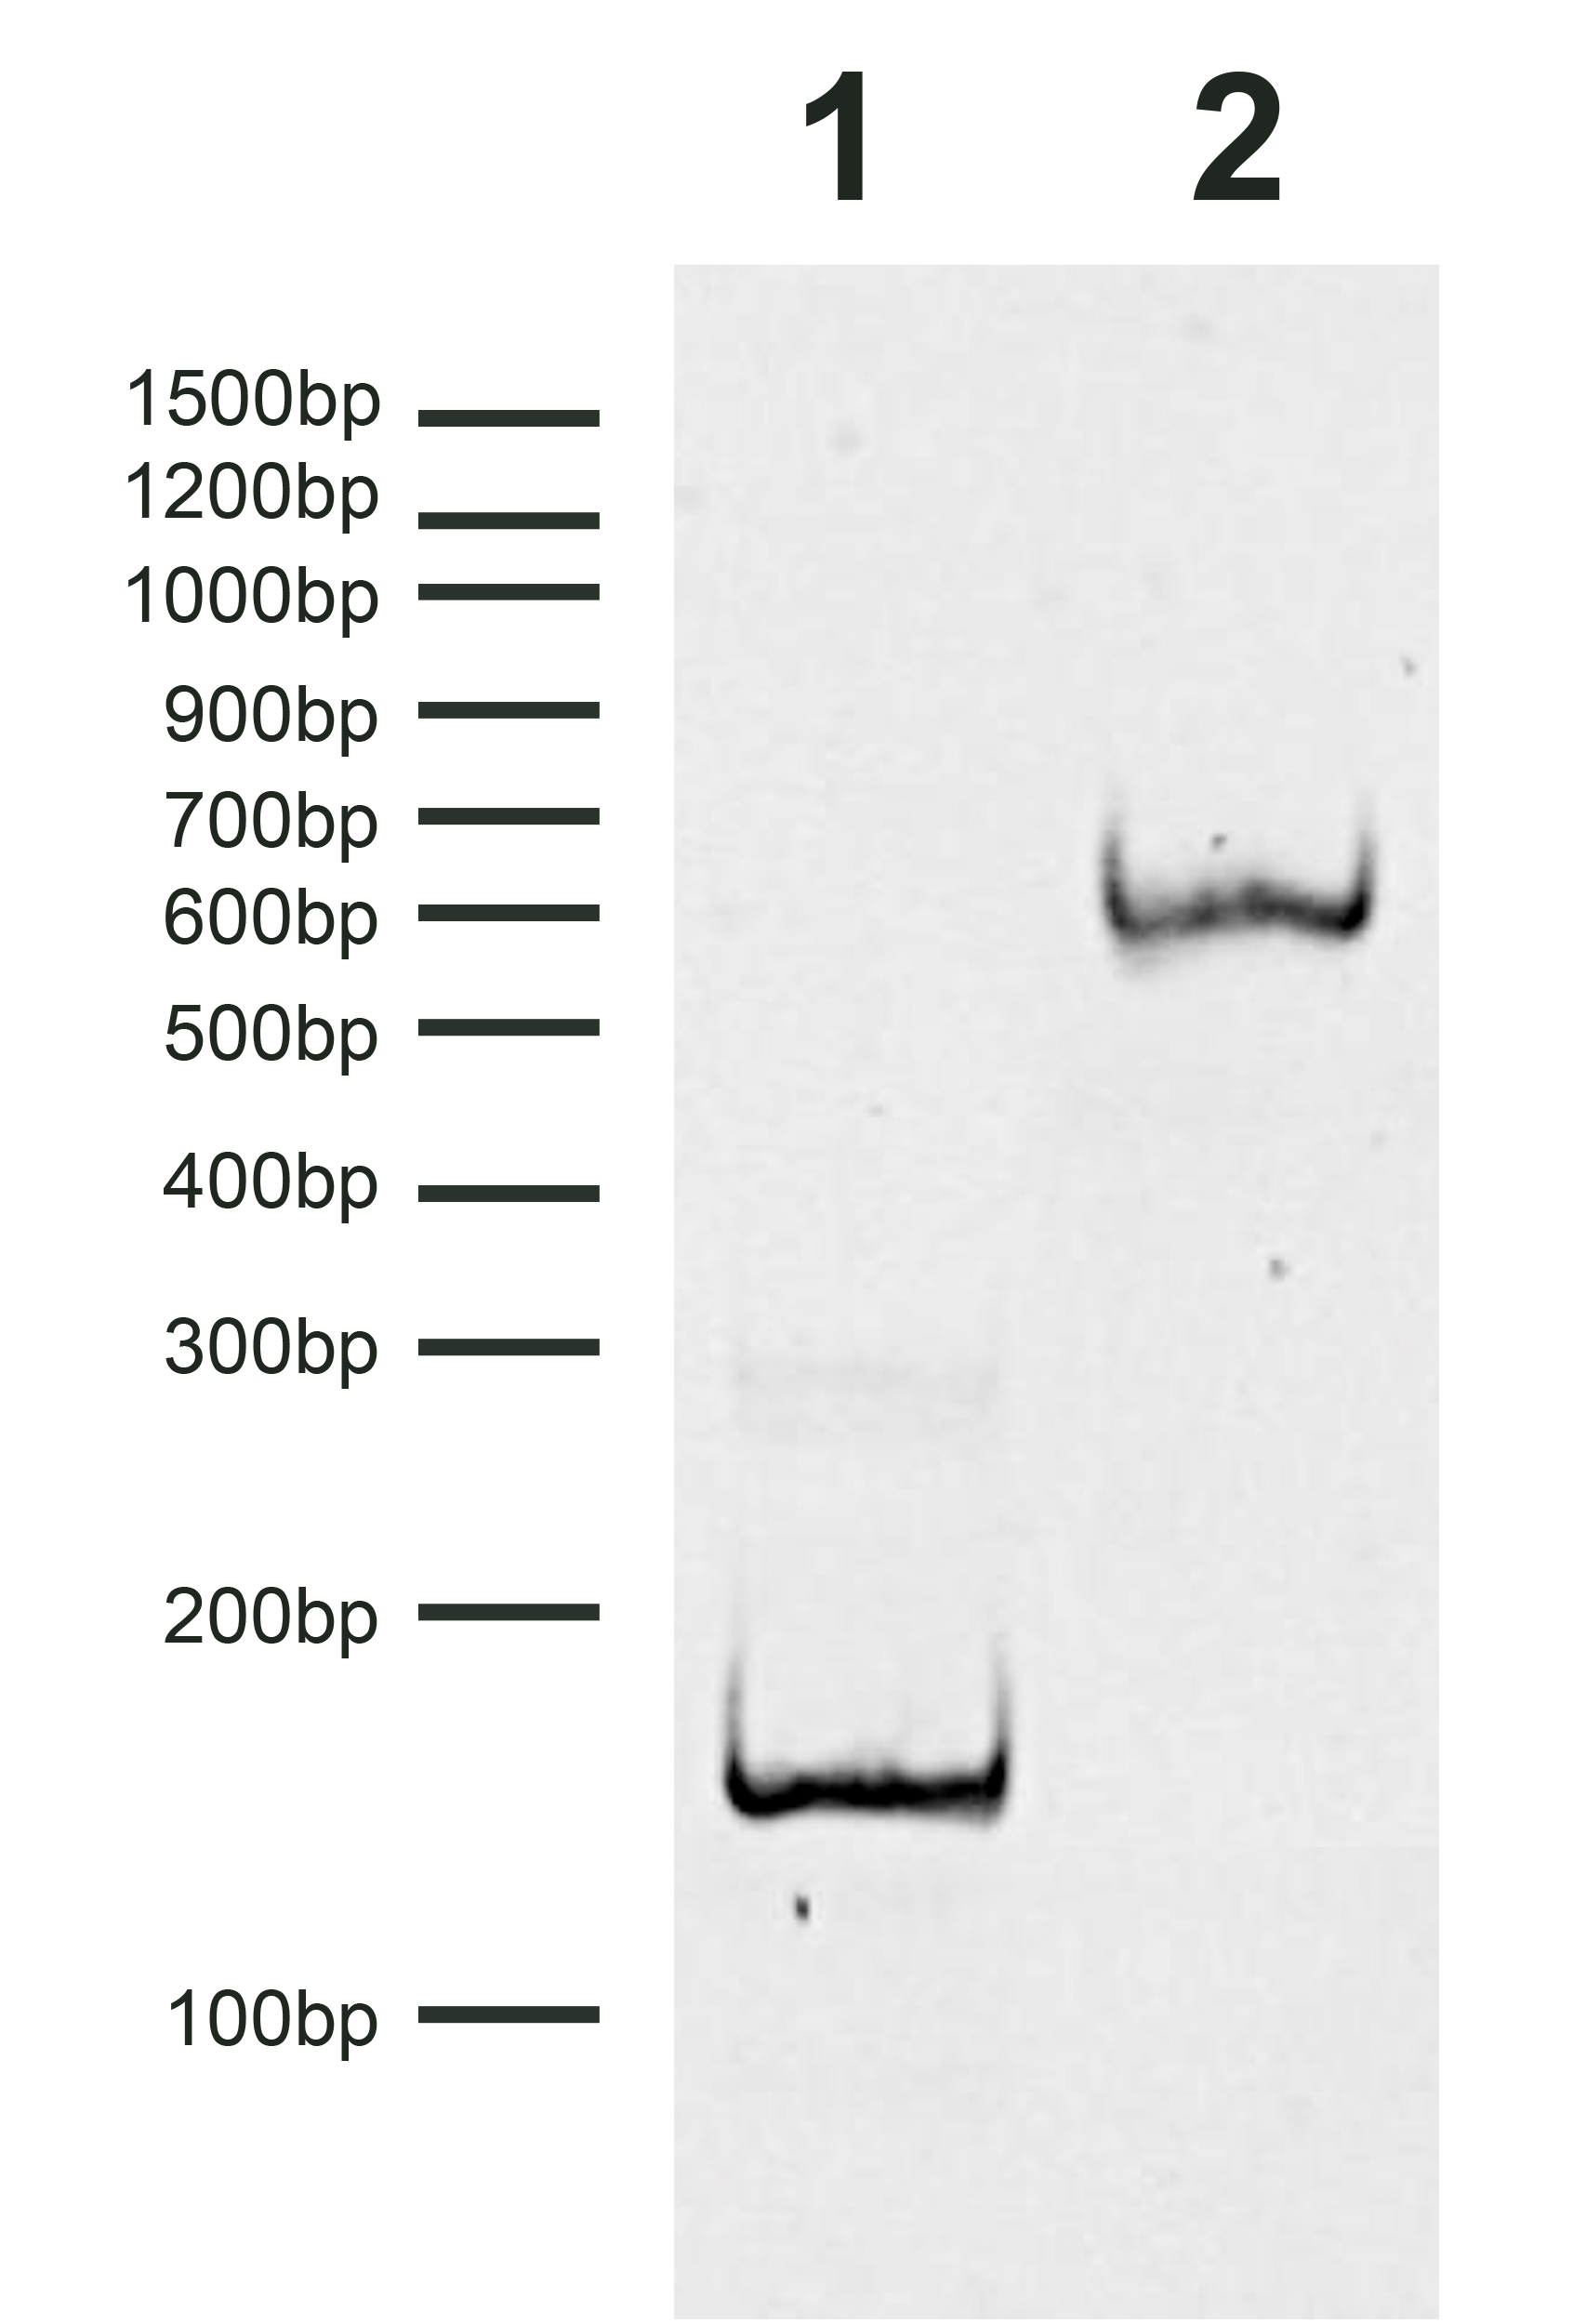 16-0378 DNA Gel Data